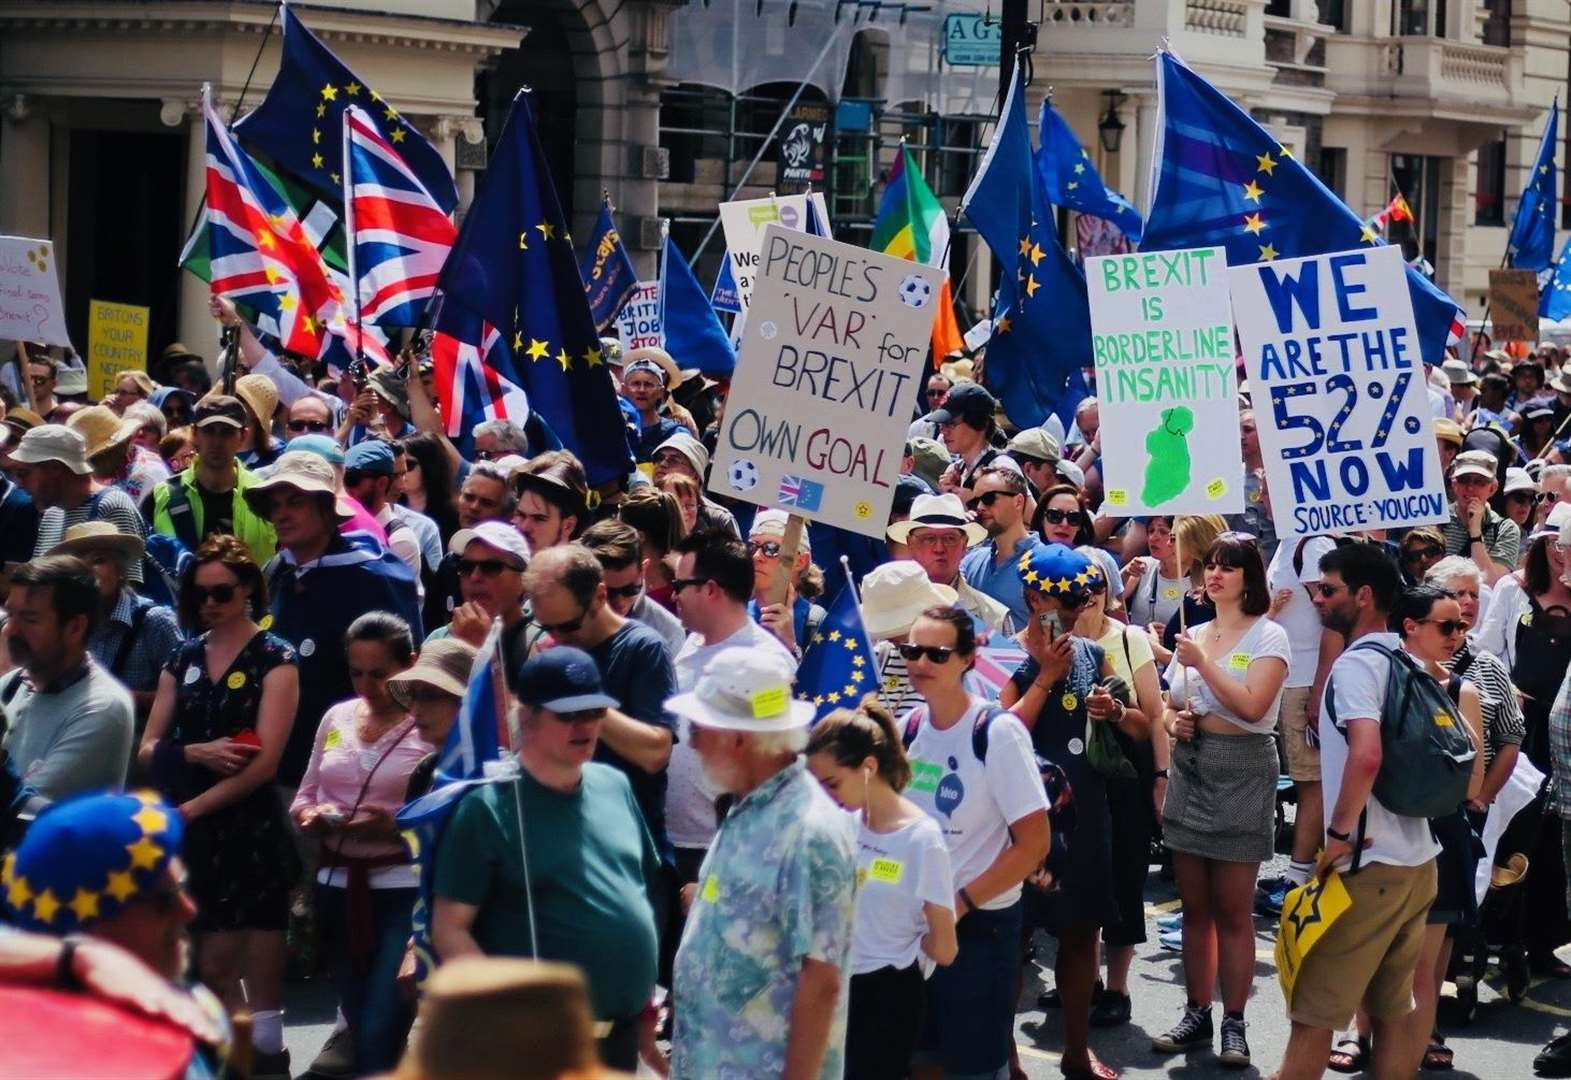 Hundreds of thousands join Brexit march